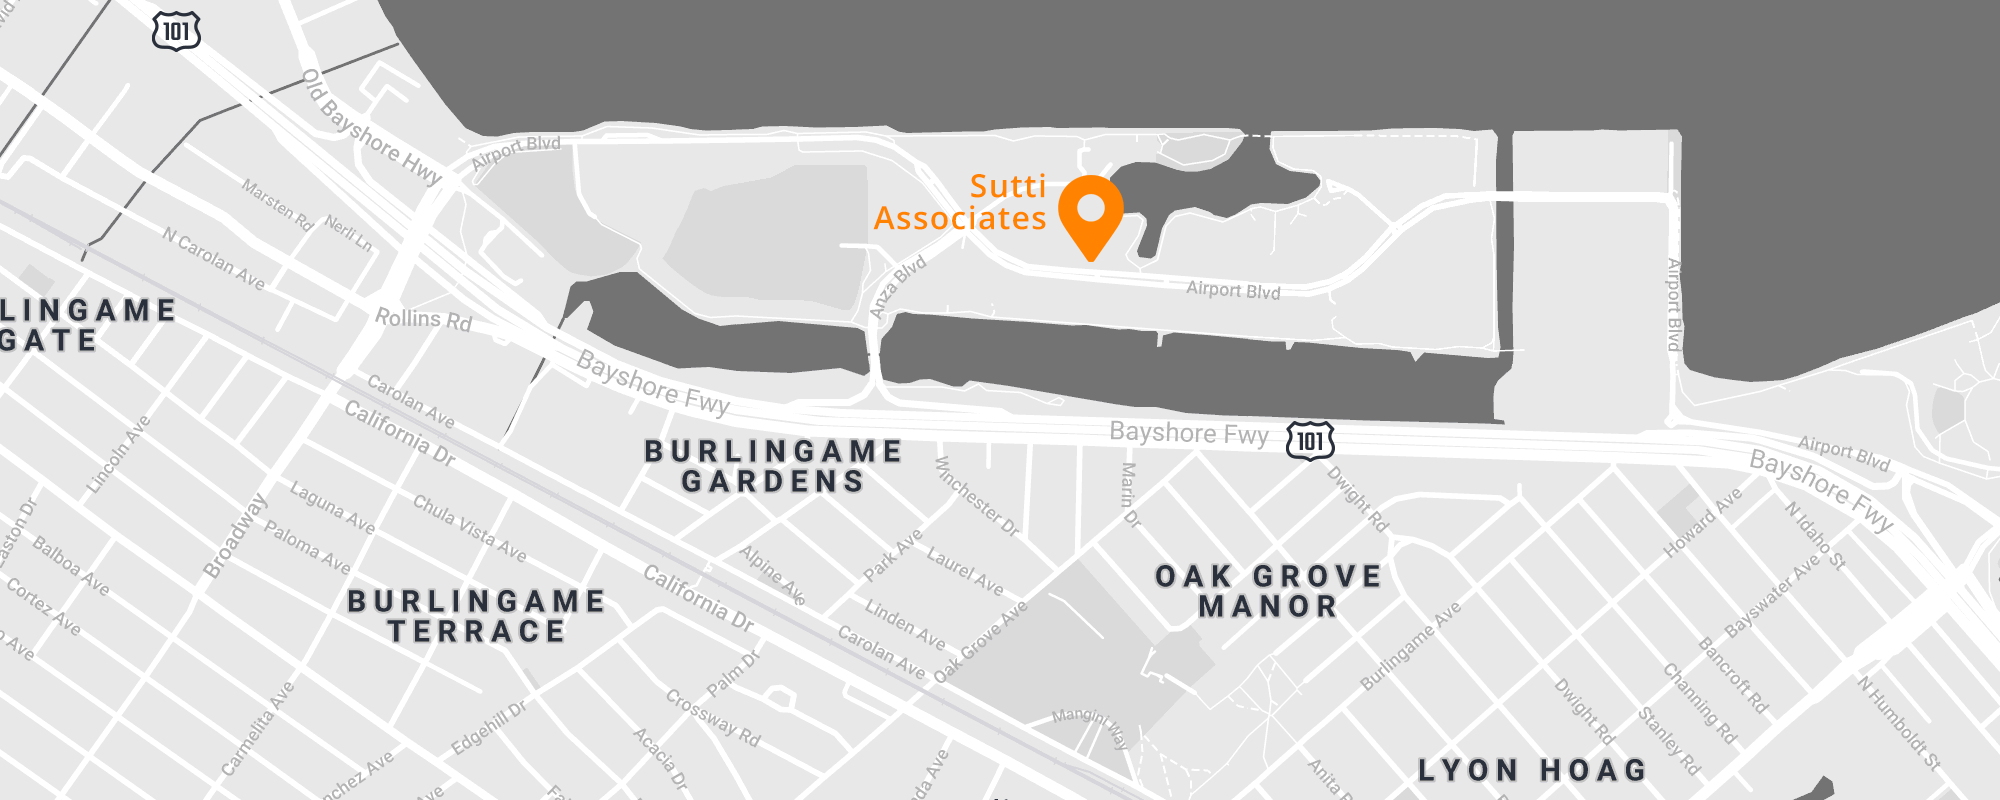 Map of Burlingame with marker at Sutti Associates office. 700 Airport Blvd., Ste. 410 Burlingame, California 94010.